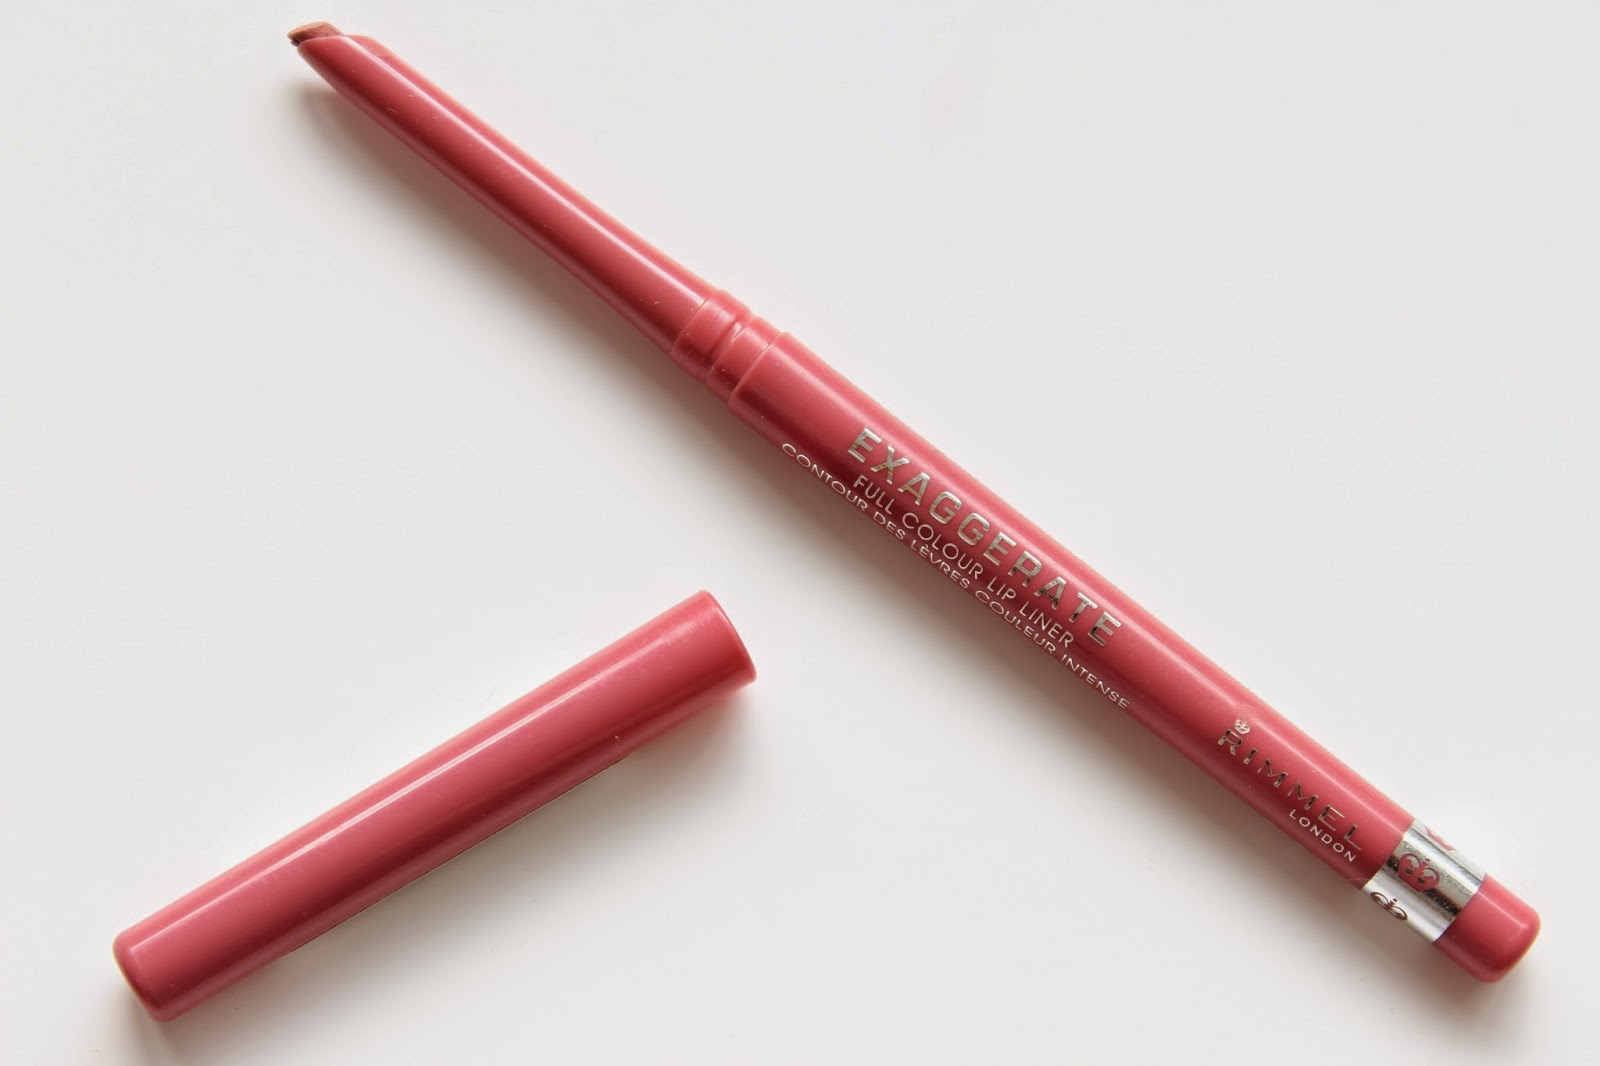 Makeup Must Have: Rimmel London East End Snob Lip Liner